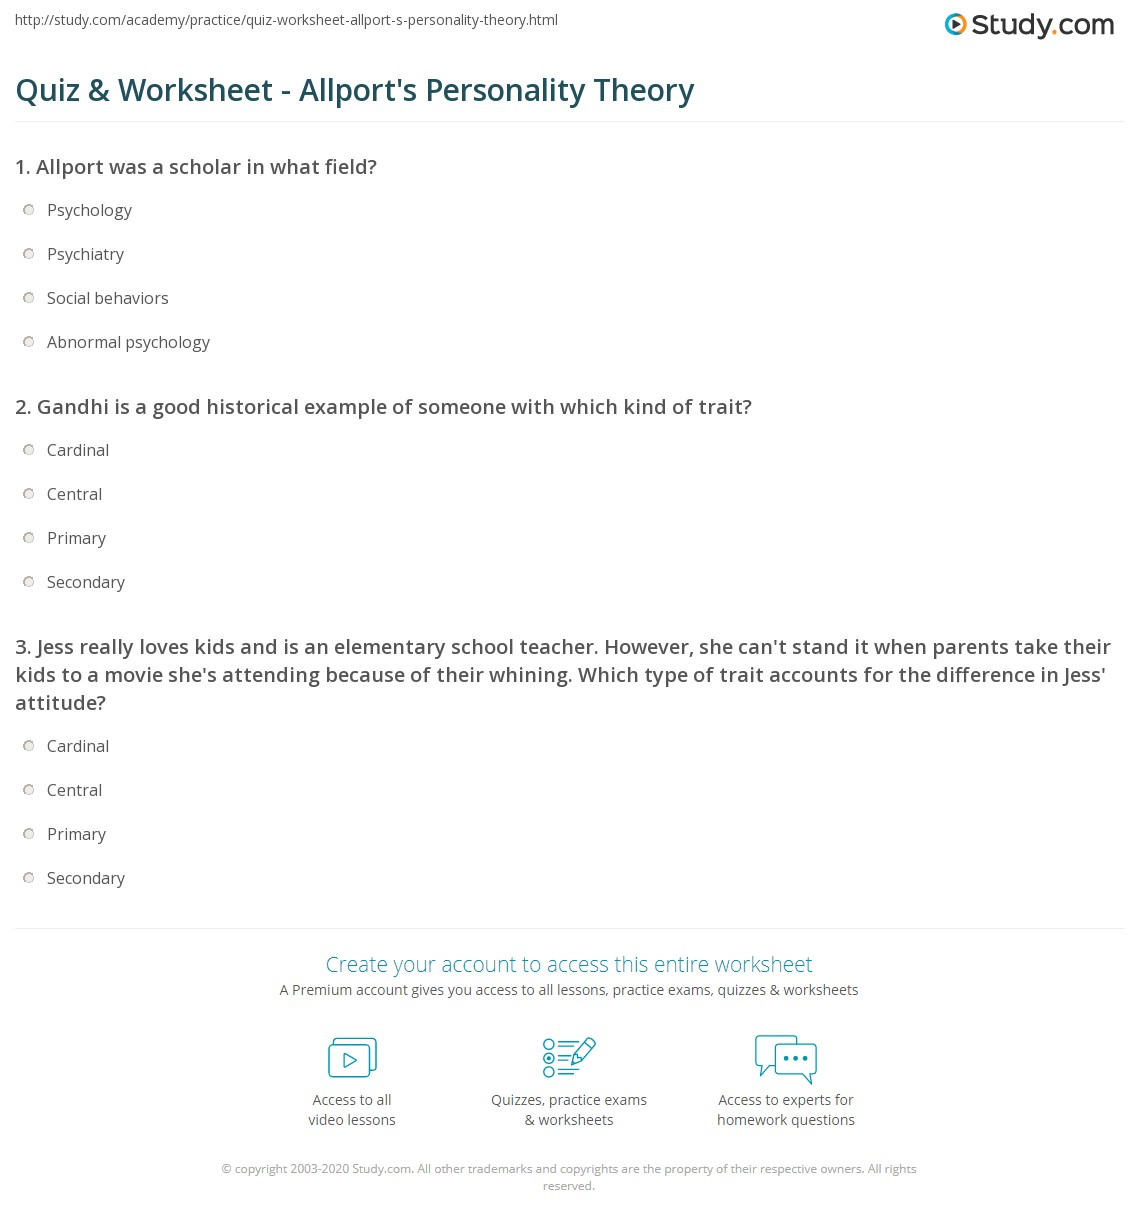 graphic regarding Personality Quiz Printable called Quiz Worksheet - Allports Individuality Principle